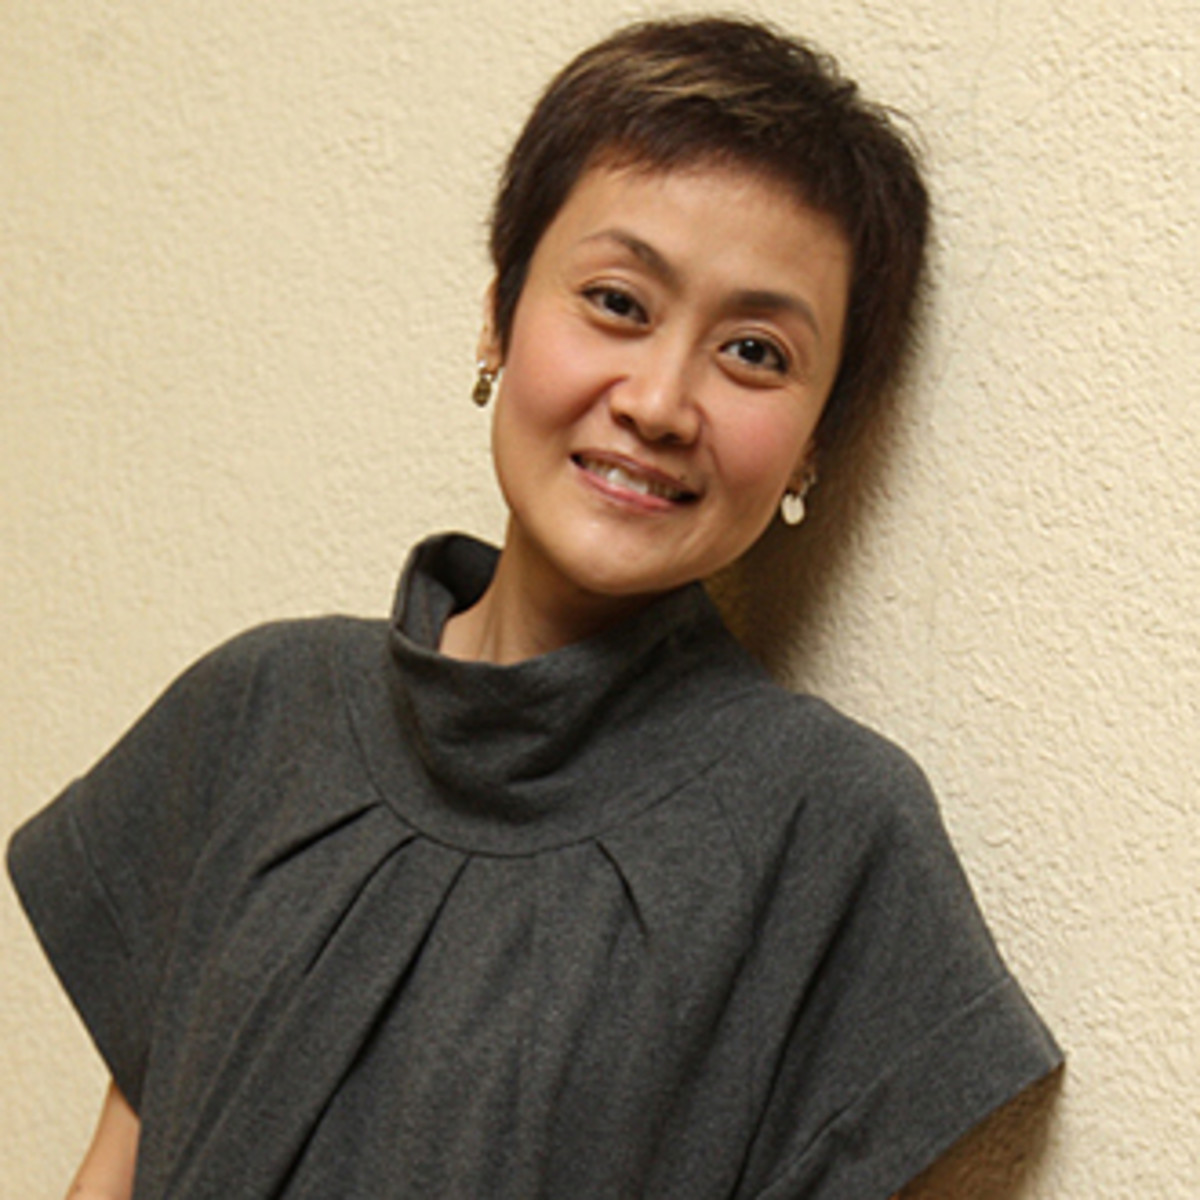 Yang Lina, 47, also known as Lina Yang, (? - March 20, 2010) - cancer deaths